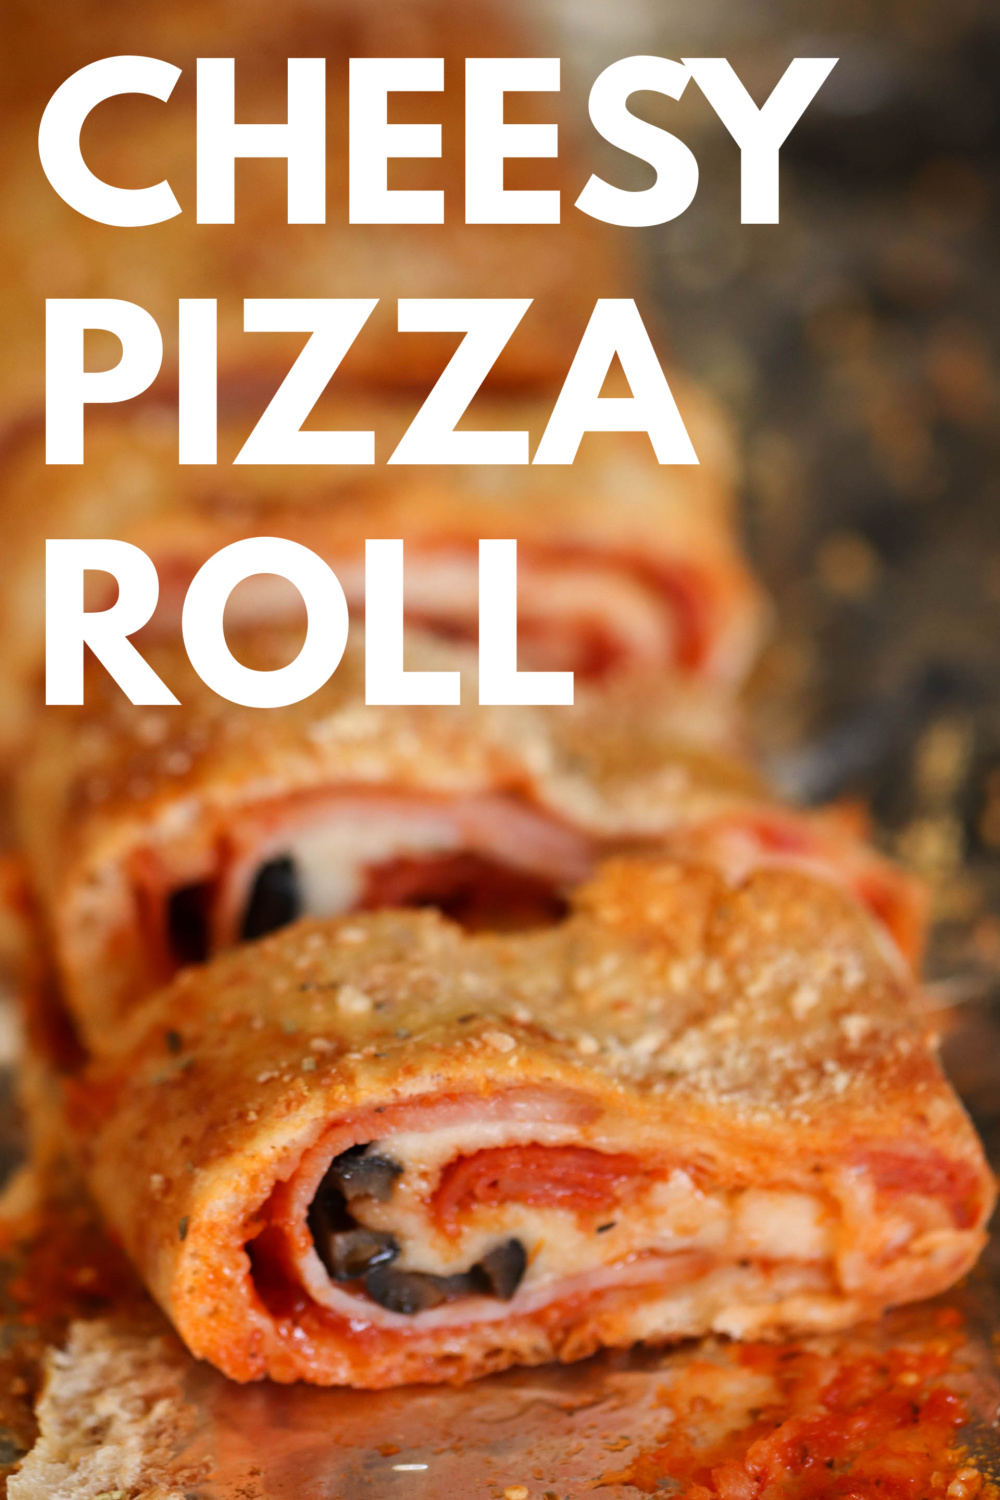 Cheesy Pizza Roll with ham and cheese